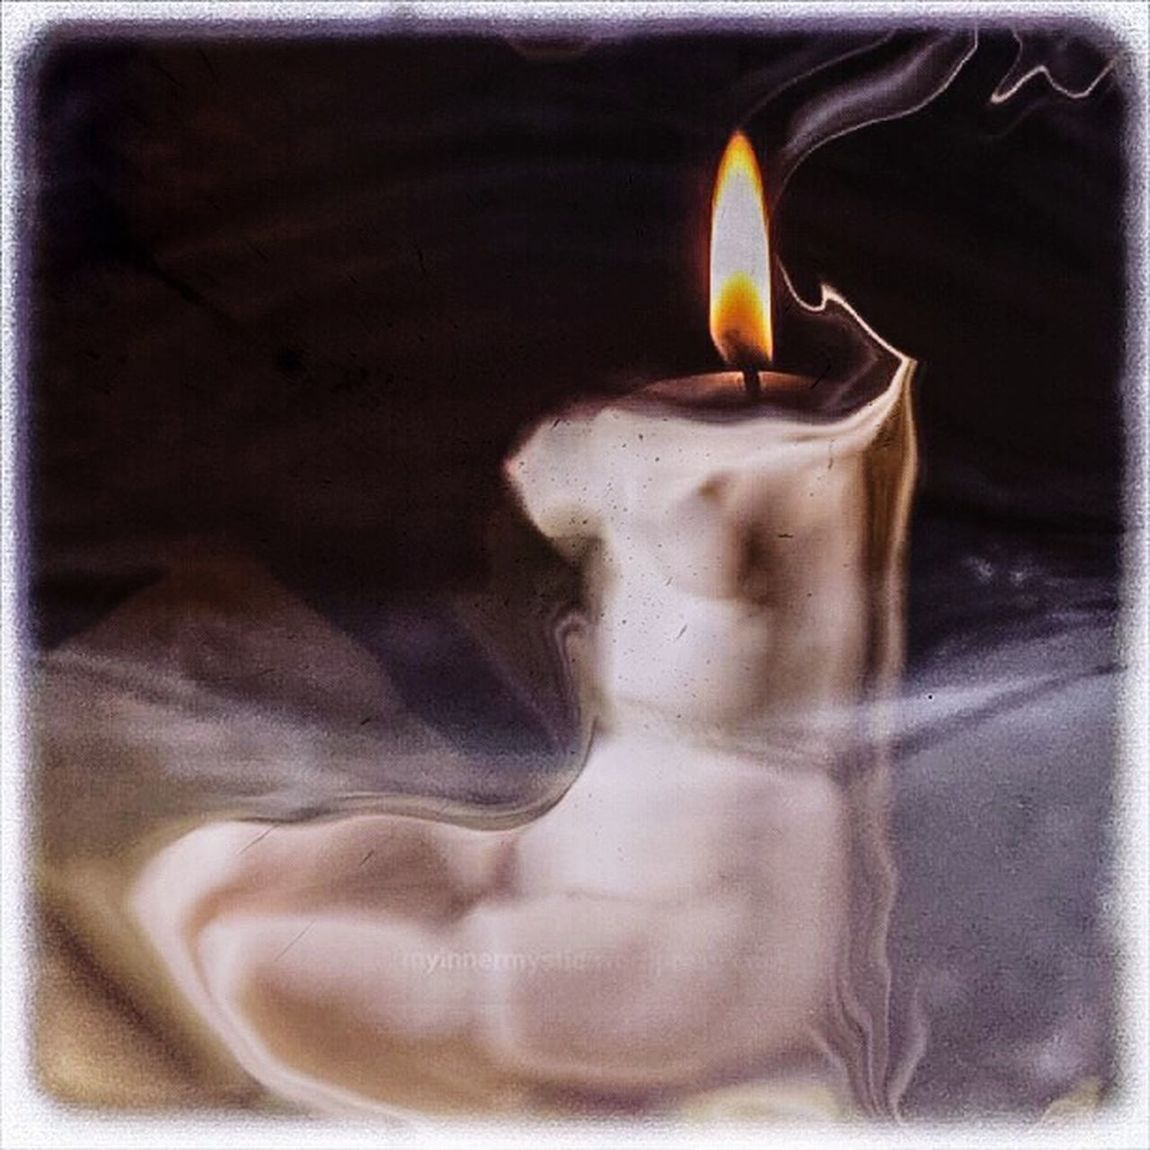 For You And You And You.... Photographic Approximation OpenEdit Rescue Us From Ourselves No More Violence Against Women